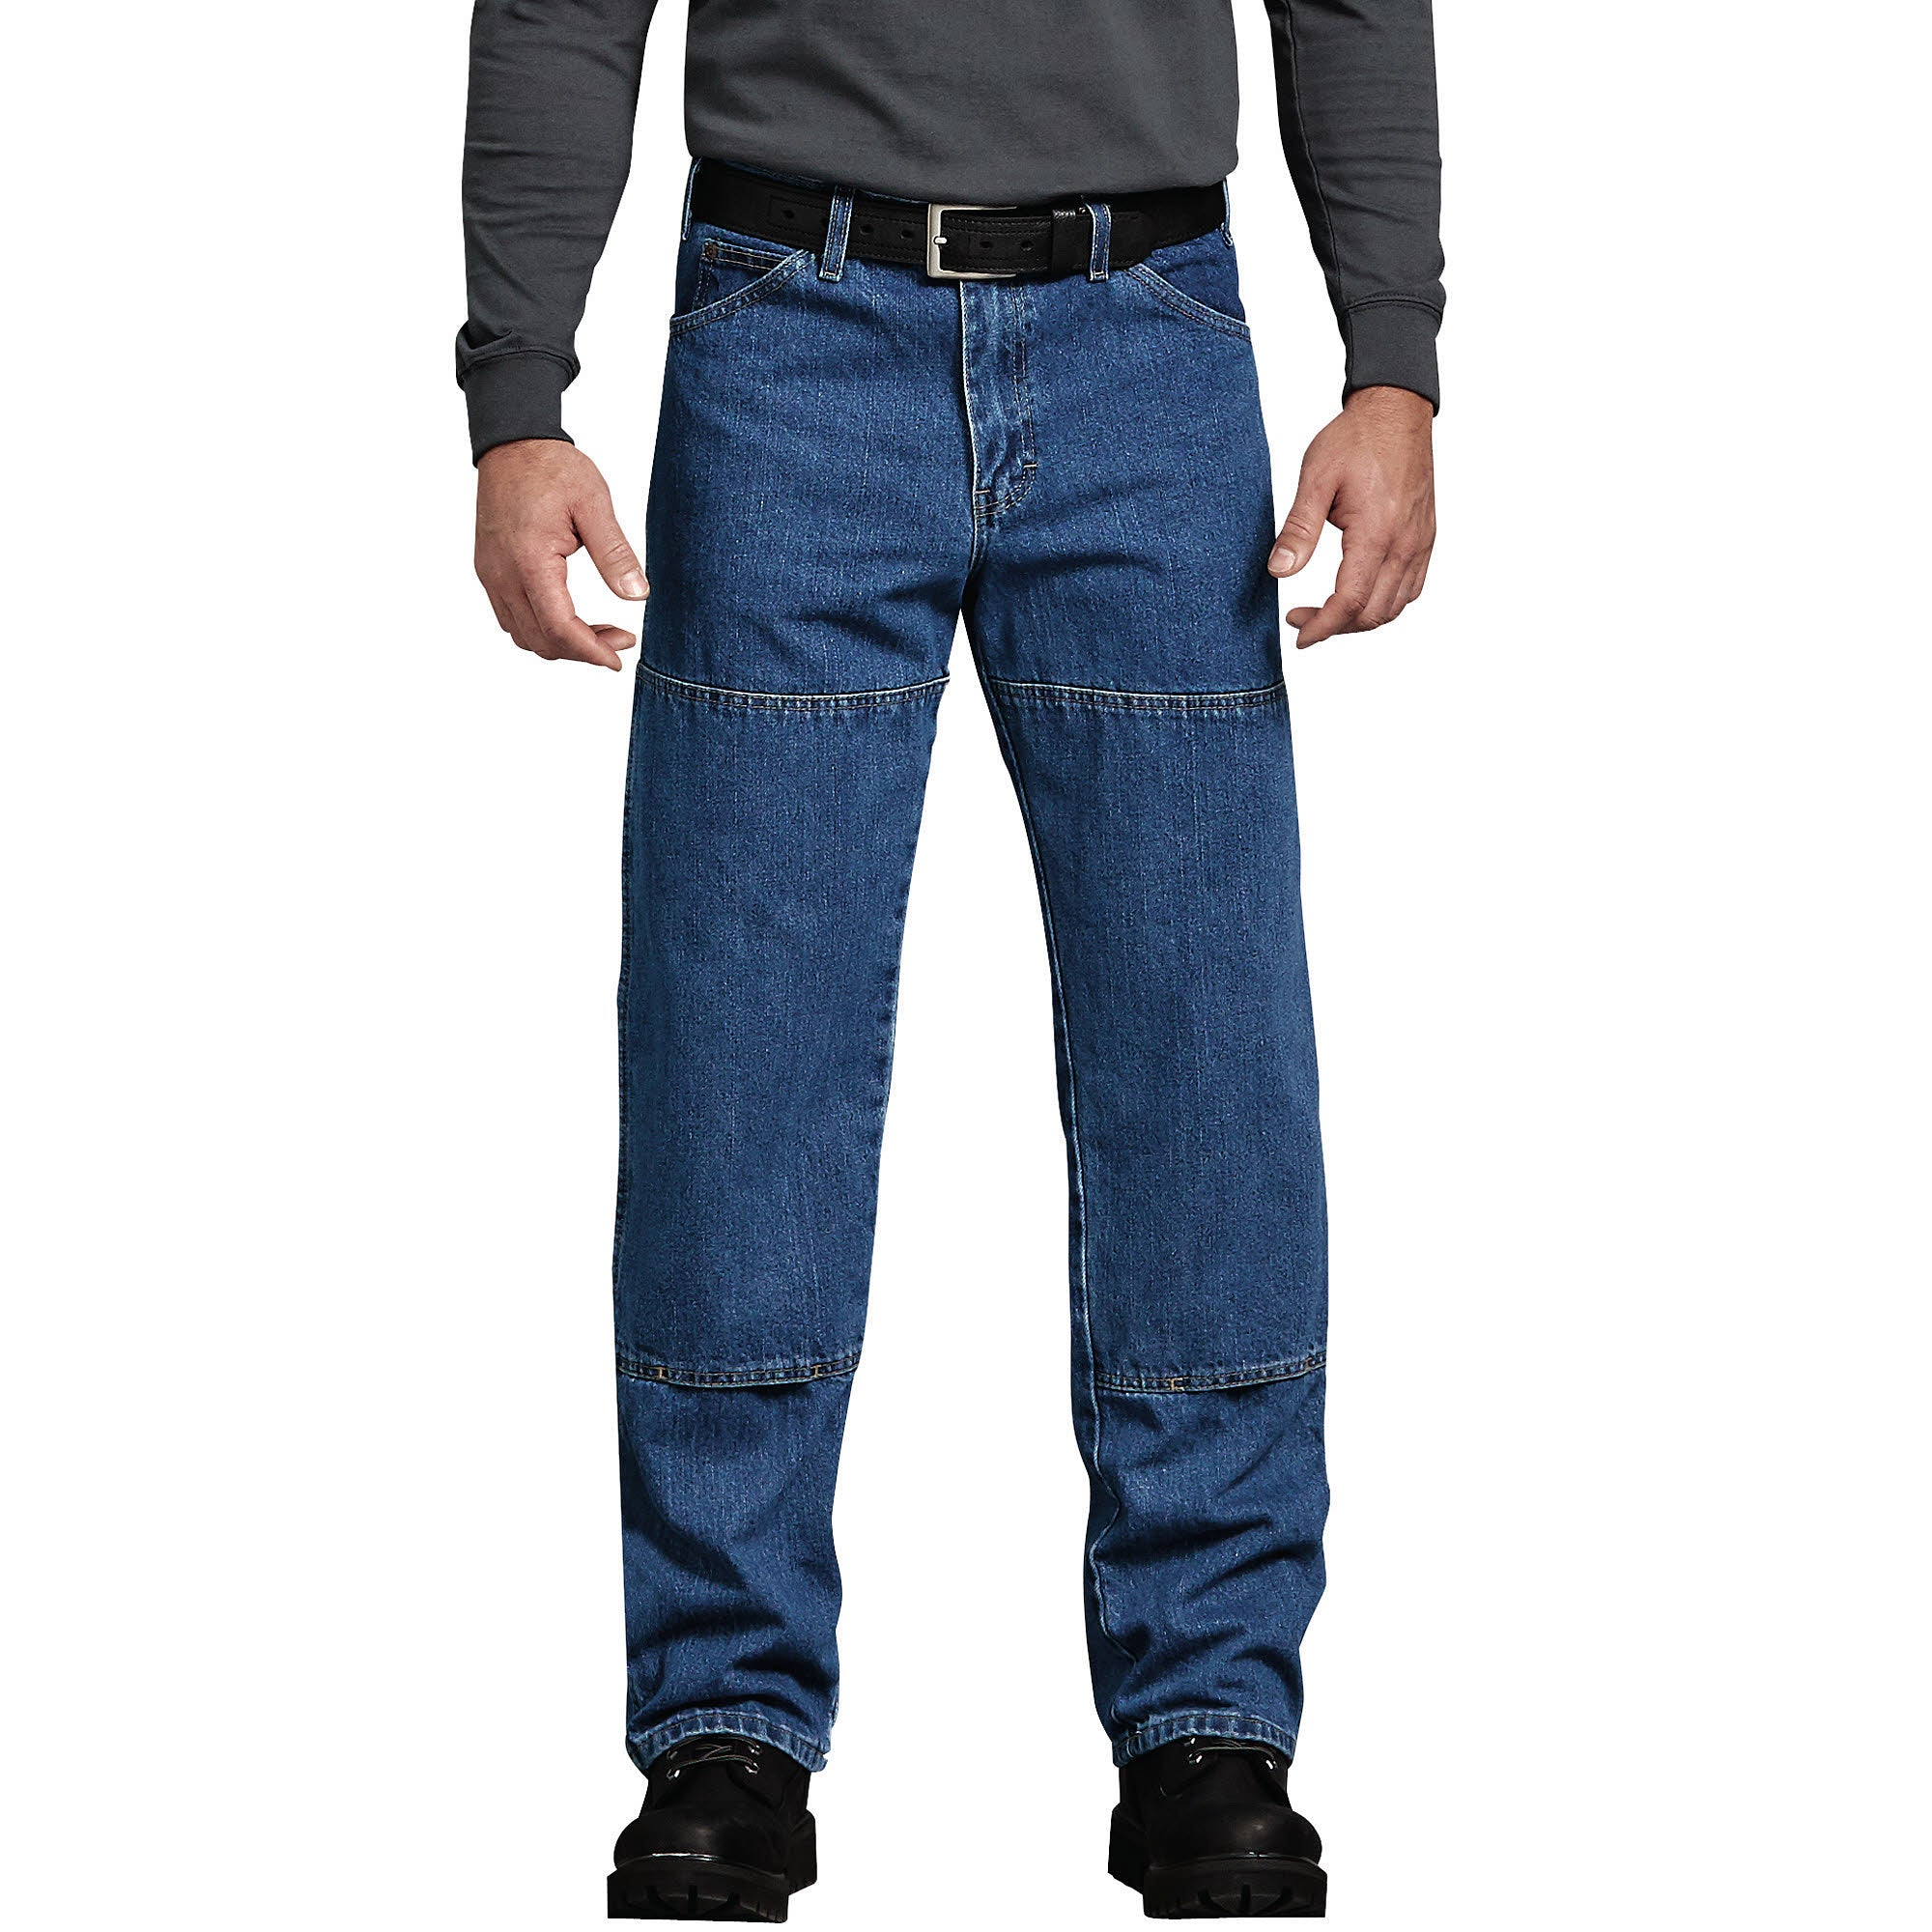 'Dickies' Relaxed Fit Workhorse Double Knee Denim Jeans - Stonewashed Indigo Blue